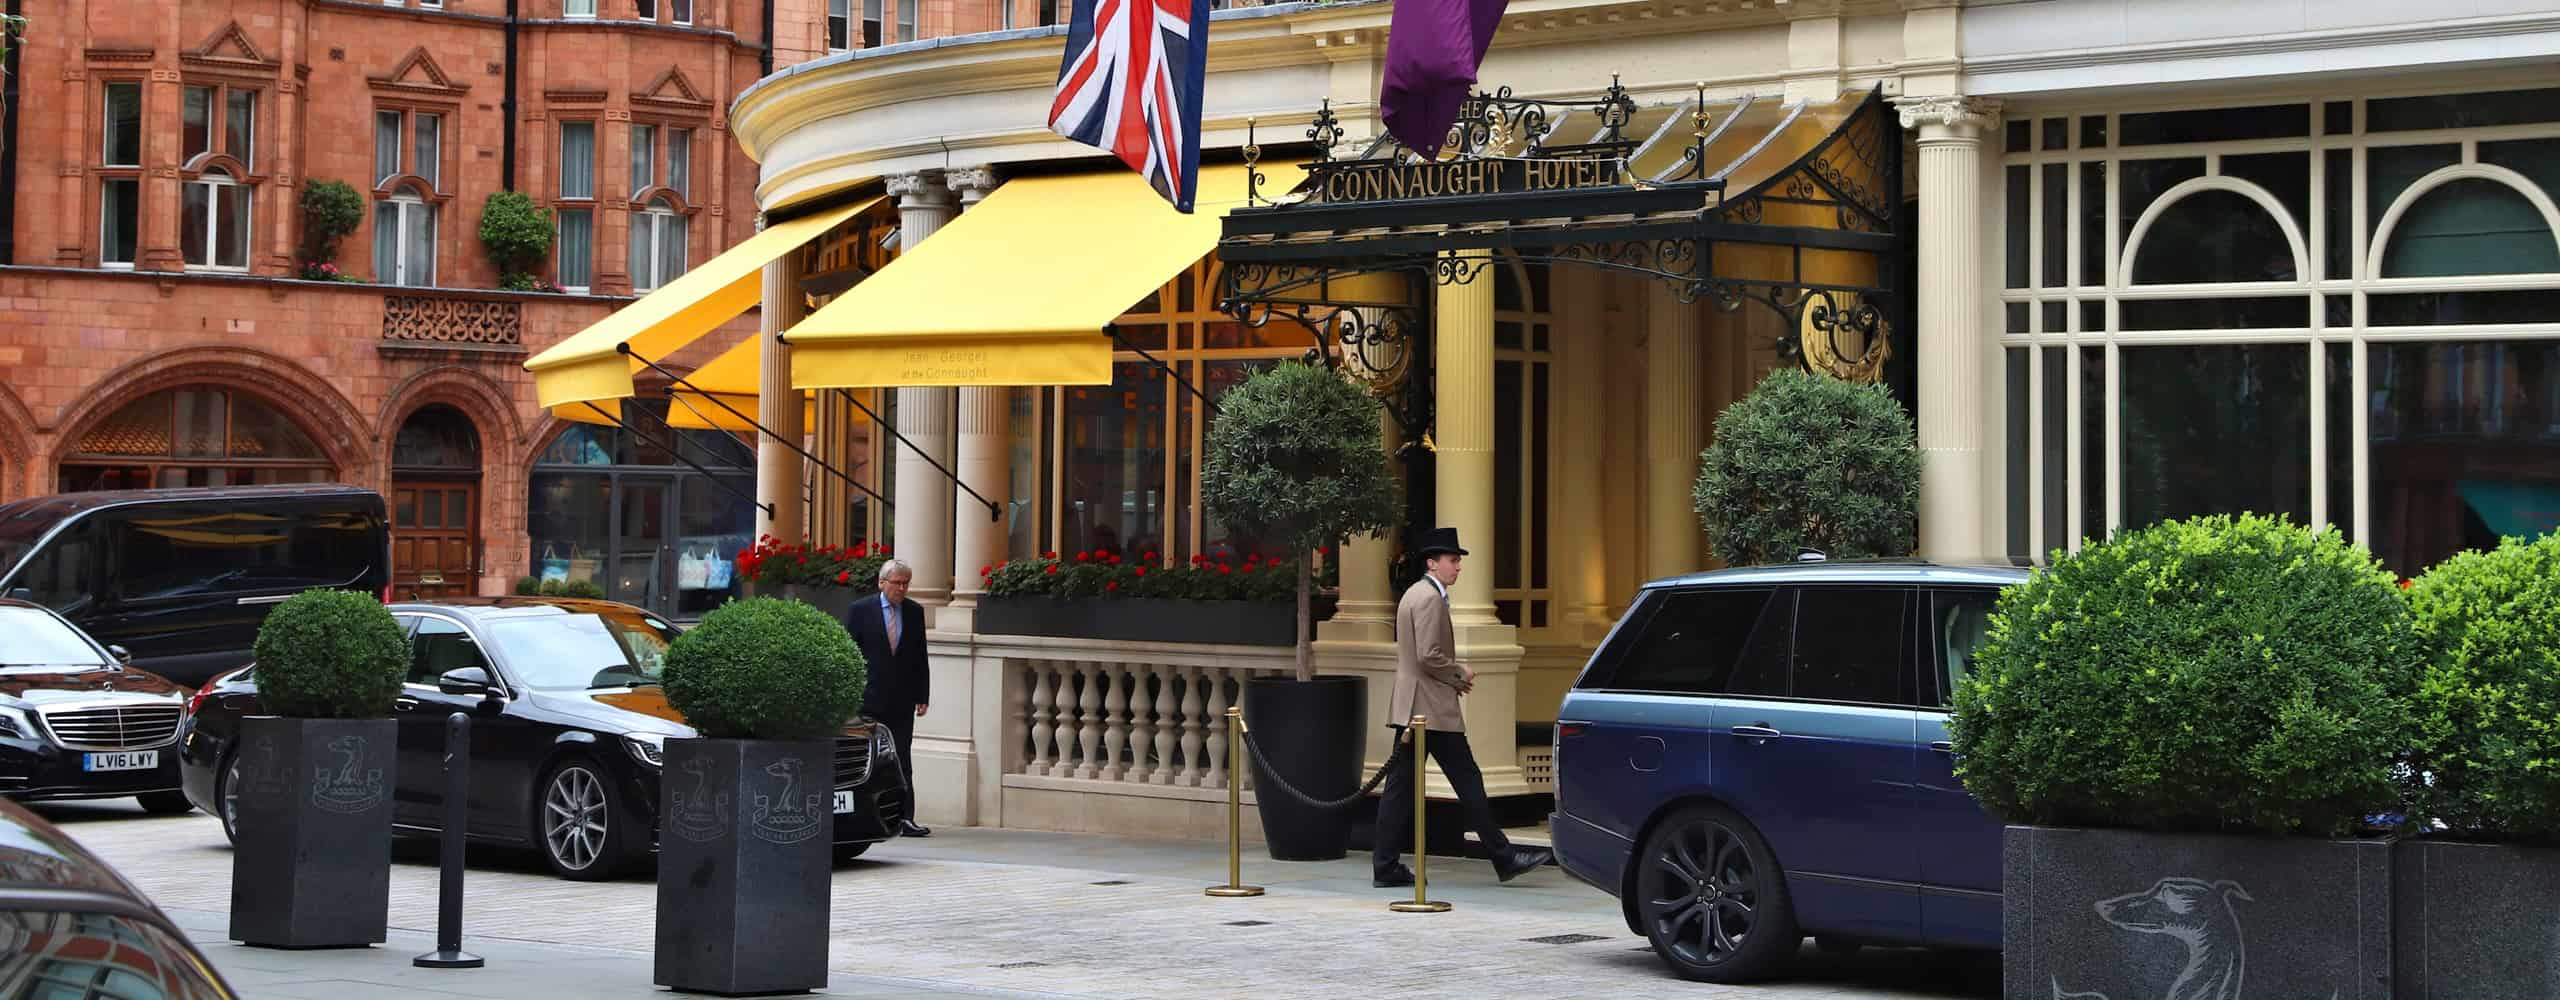 The Connaught Hotel In London, UK